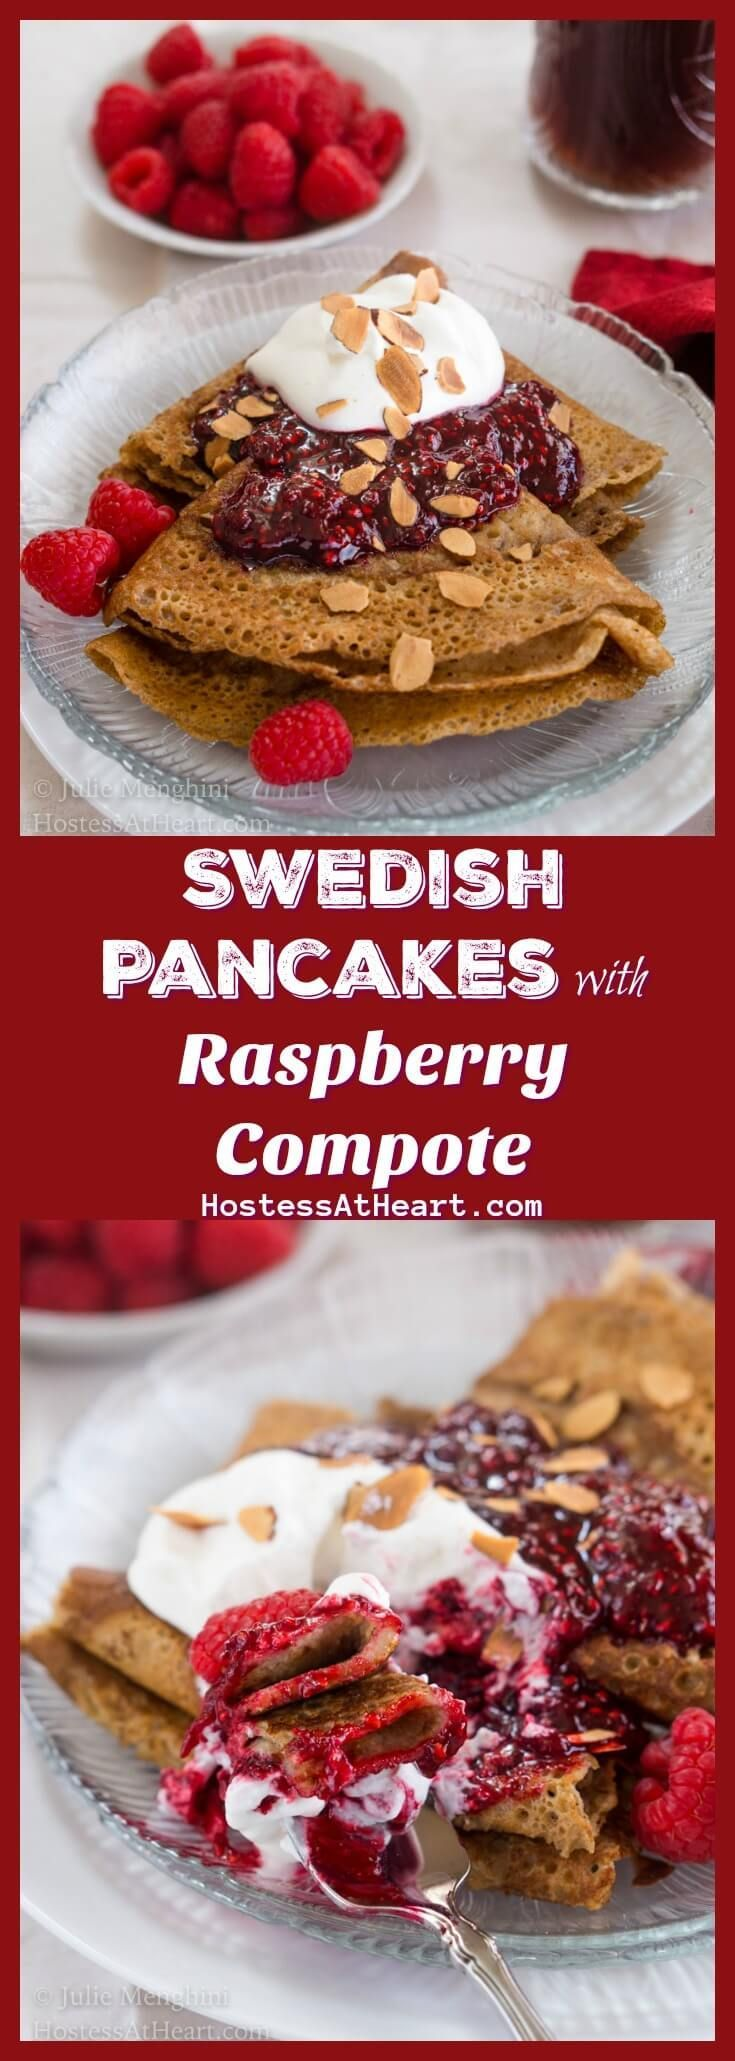 Swedish Pancakes with Raspberry Compote is a little taste of decadence with a side of amazing.  They're the perfect brunch or breakfast when you're looking for that wow factor | HostessAtHeart.com #pancake #breakfast #brunch #homemade via @HostessAtHeart